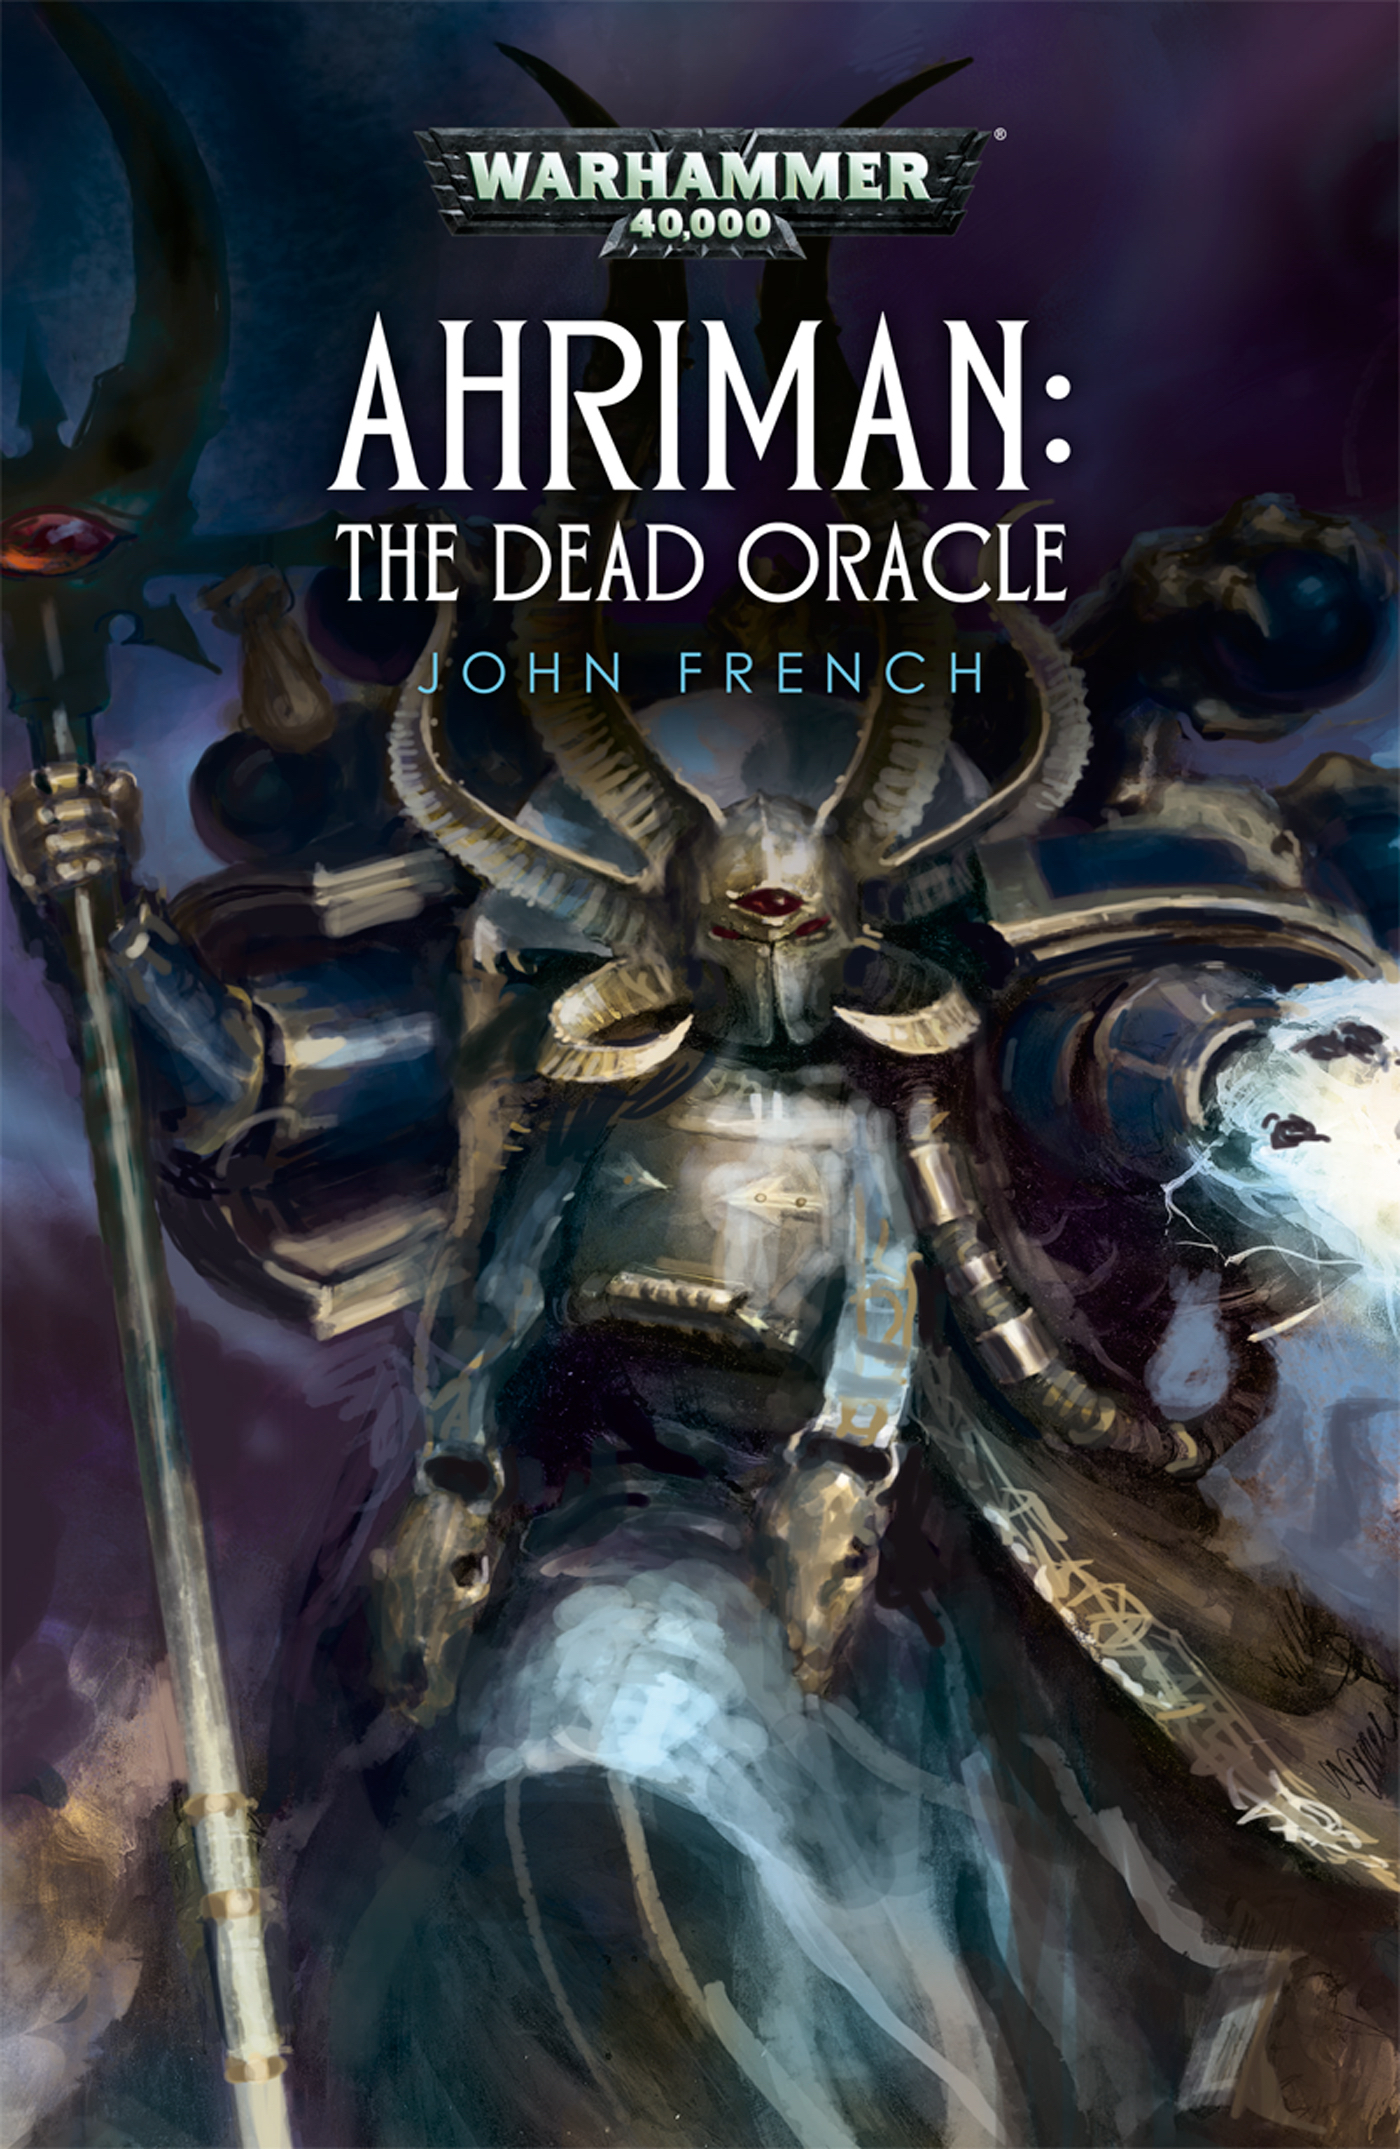 Ahriman: The Dead Oracle by John French